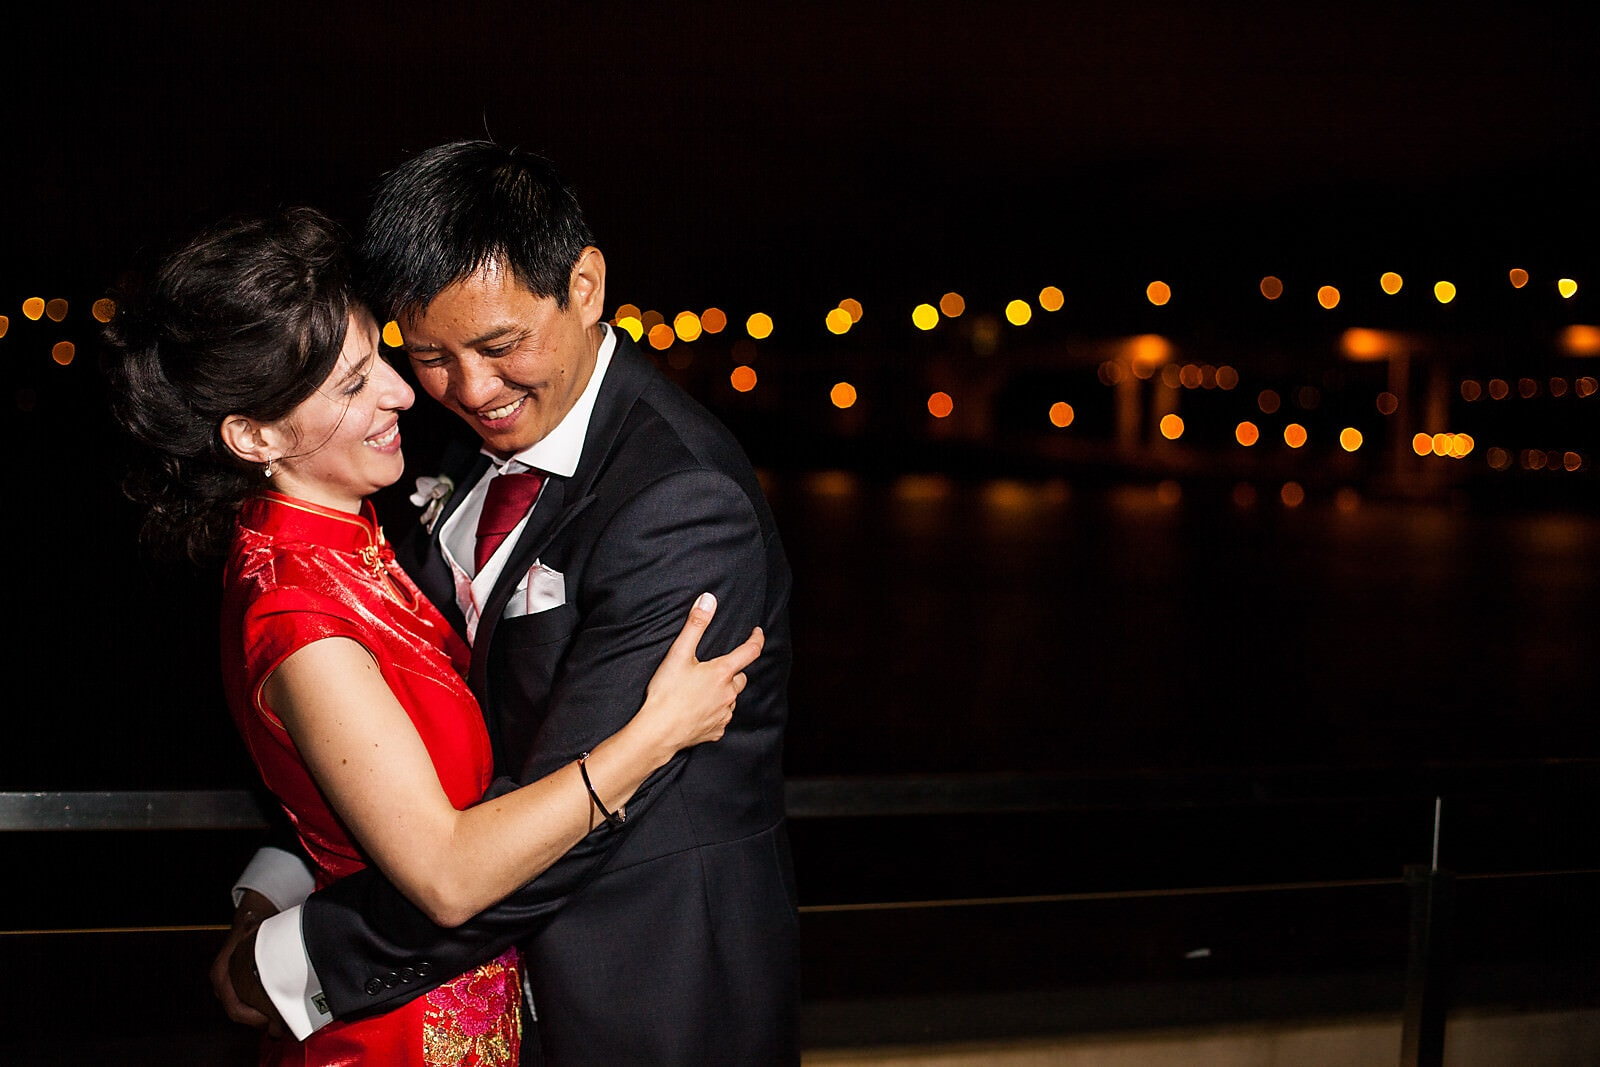 Bride and groom in Chinese wedding outfits hug at night with the Porto bridge in the background